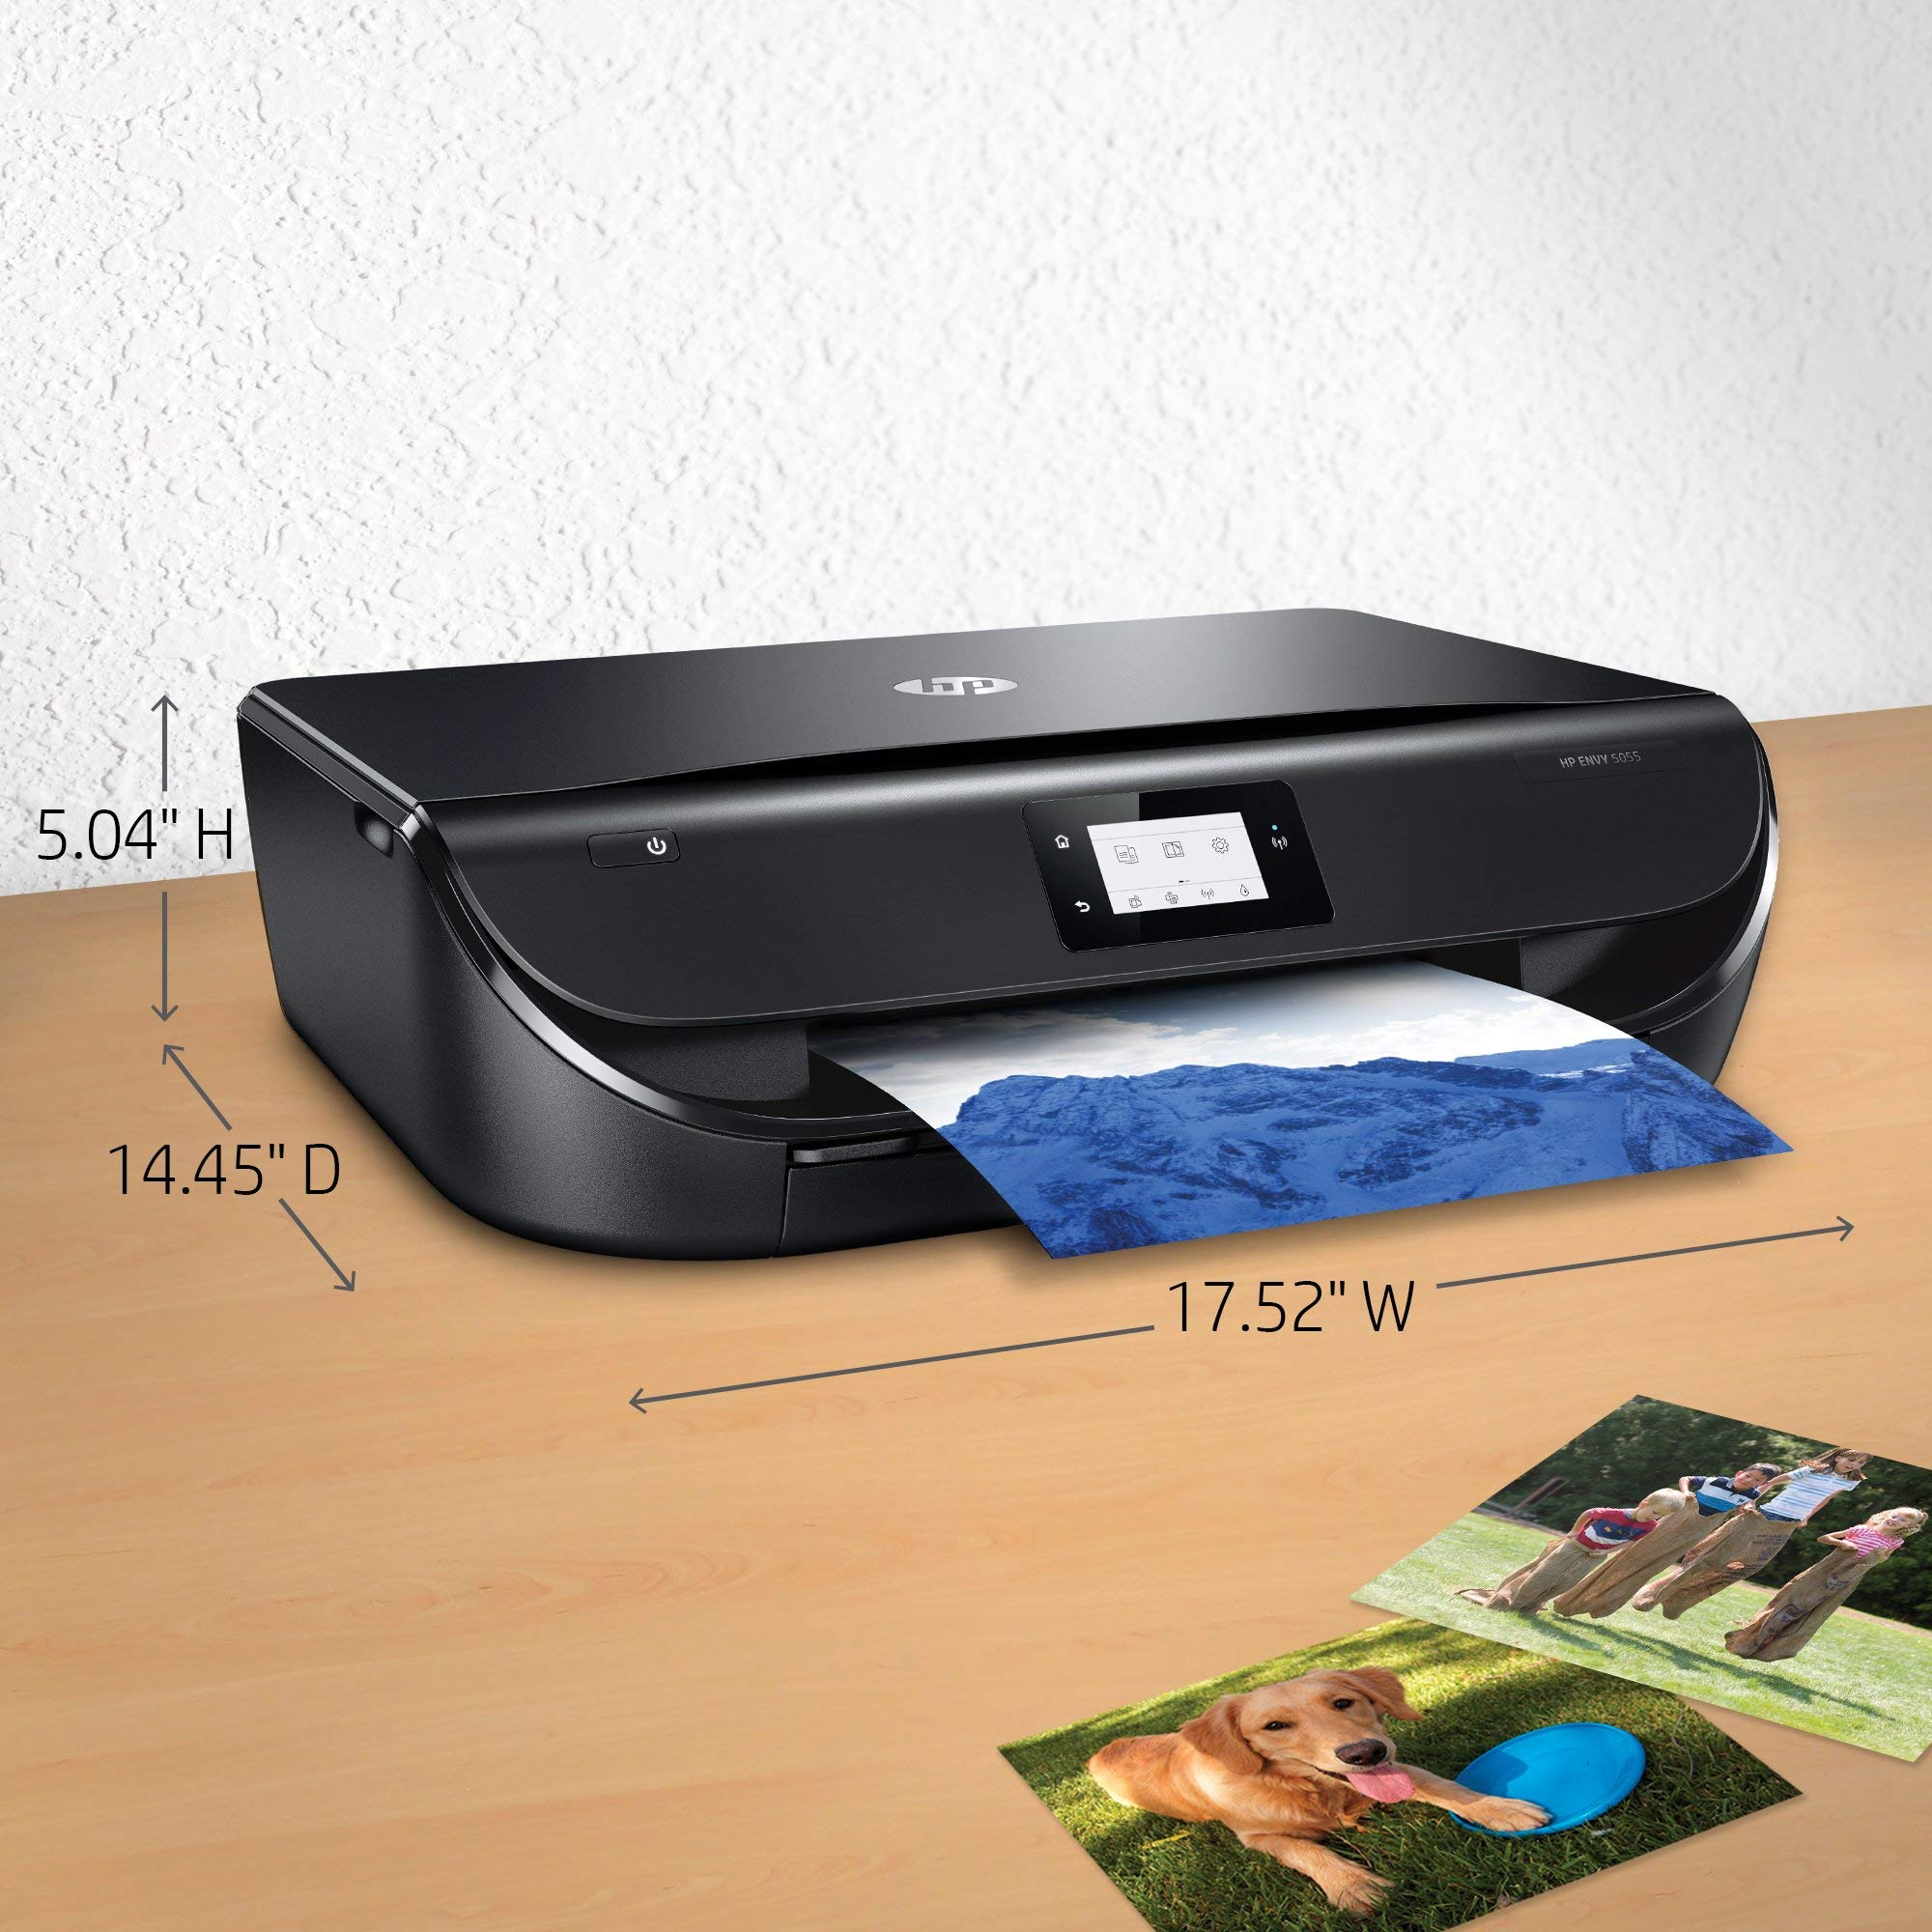 HP Envy 5055 Wireless All-in-One Photo Printer, HP Instant Ink & Amazon Dash Replenishment Ready (M2U85A) (Renewed) by HP (Image #3)